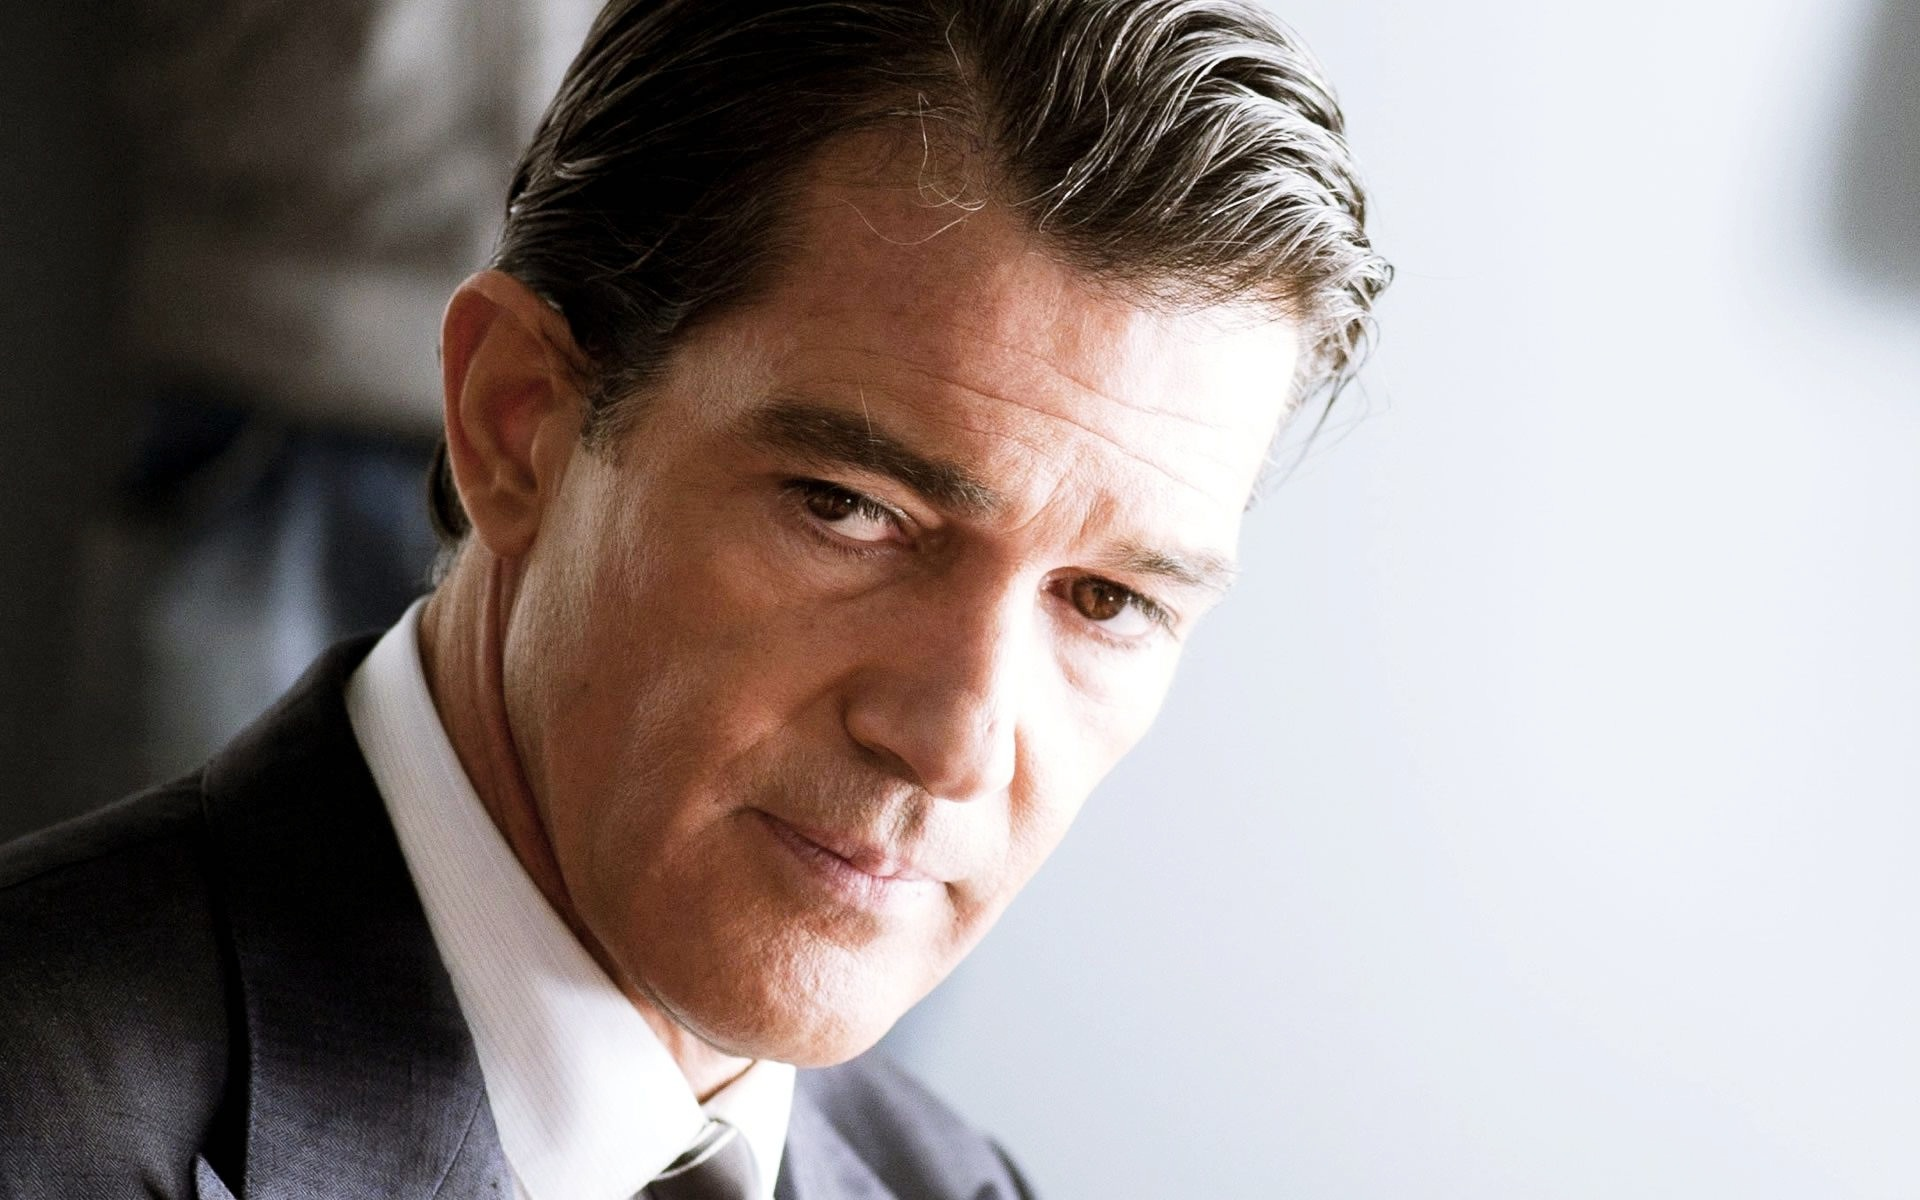 Antonio Banderas Wallpaper